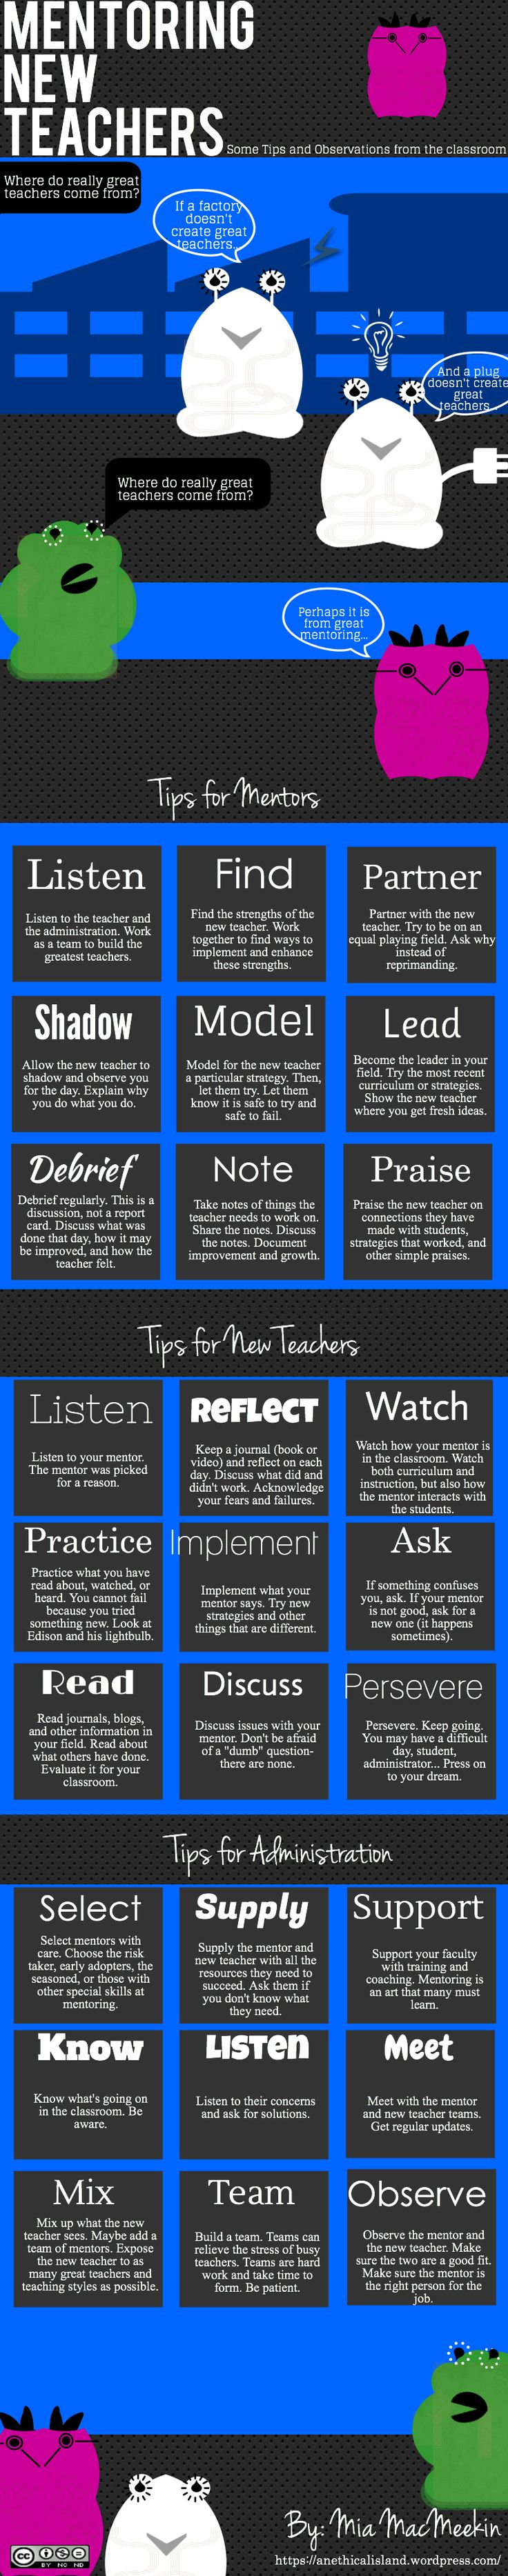 I was playing around with the infographic and thinking about life. One thing that keeps coming up in conversations I have is about new teachers. A friend has a new teacher in her classroom doing hi...